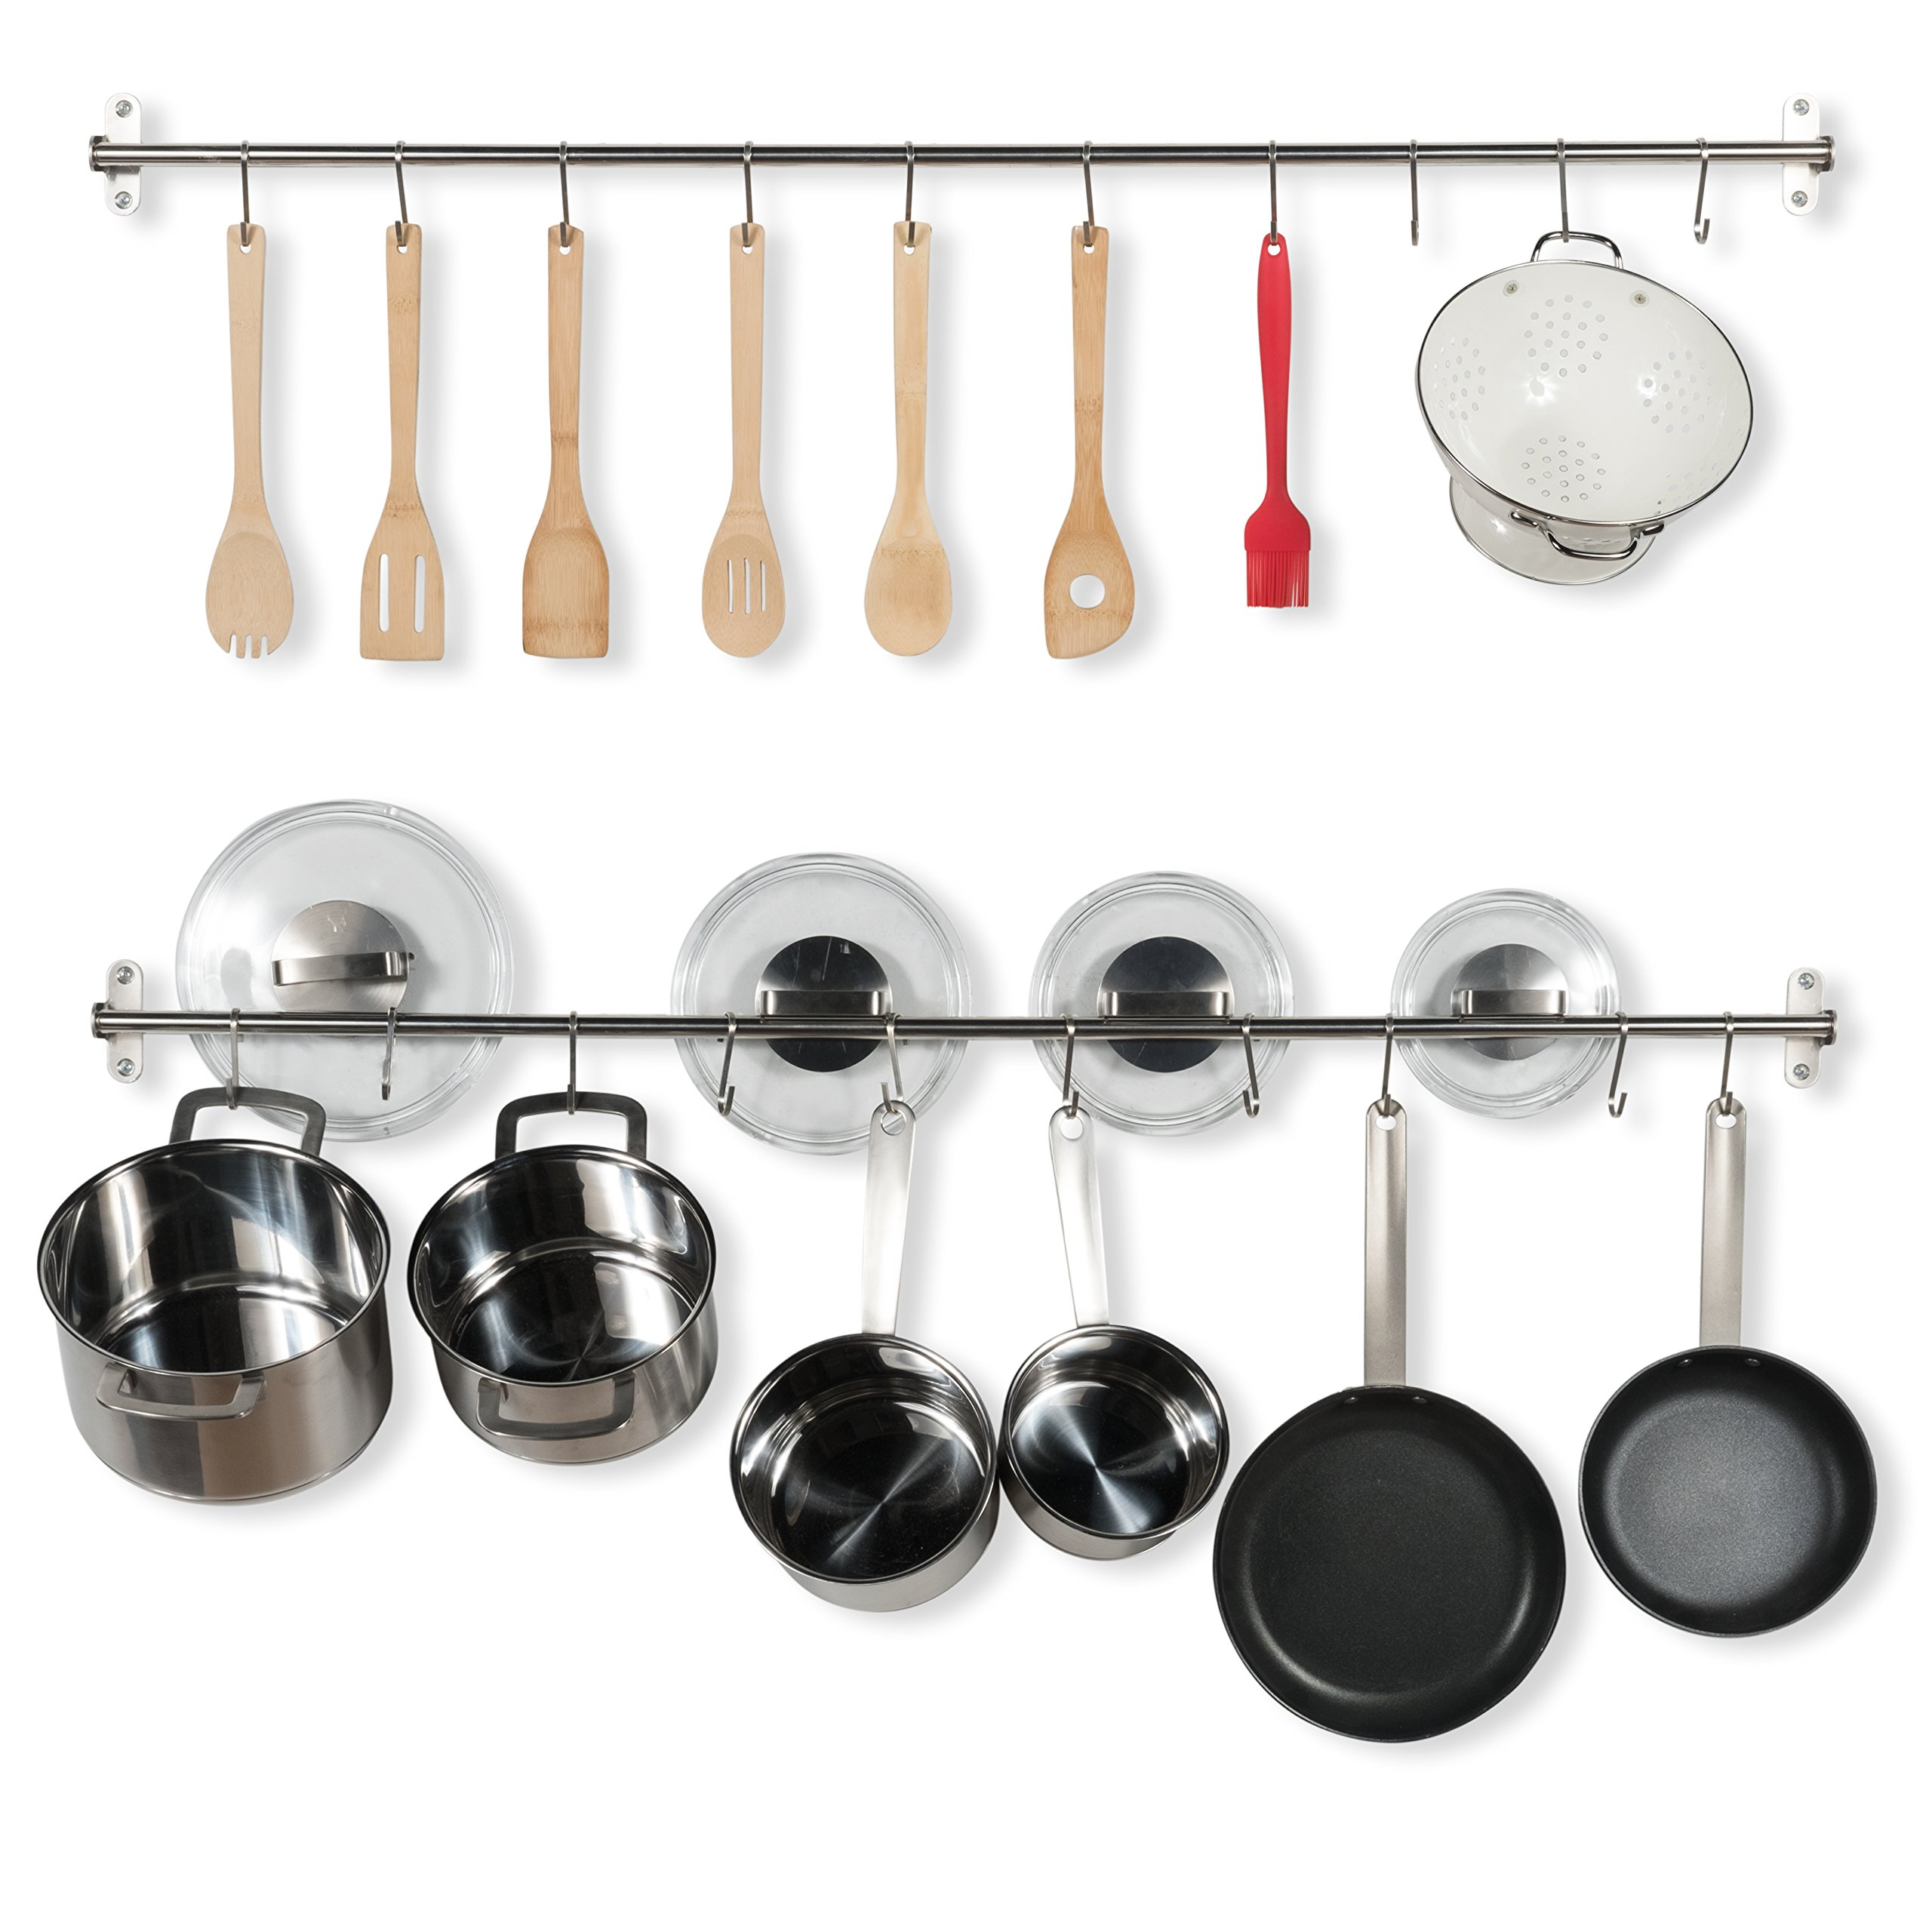 Wallniture Kitchen Wall Mount Rail Towel Bar Rack with Hooks Stainless Steel 47'' Inch Set of 2